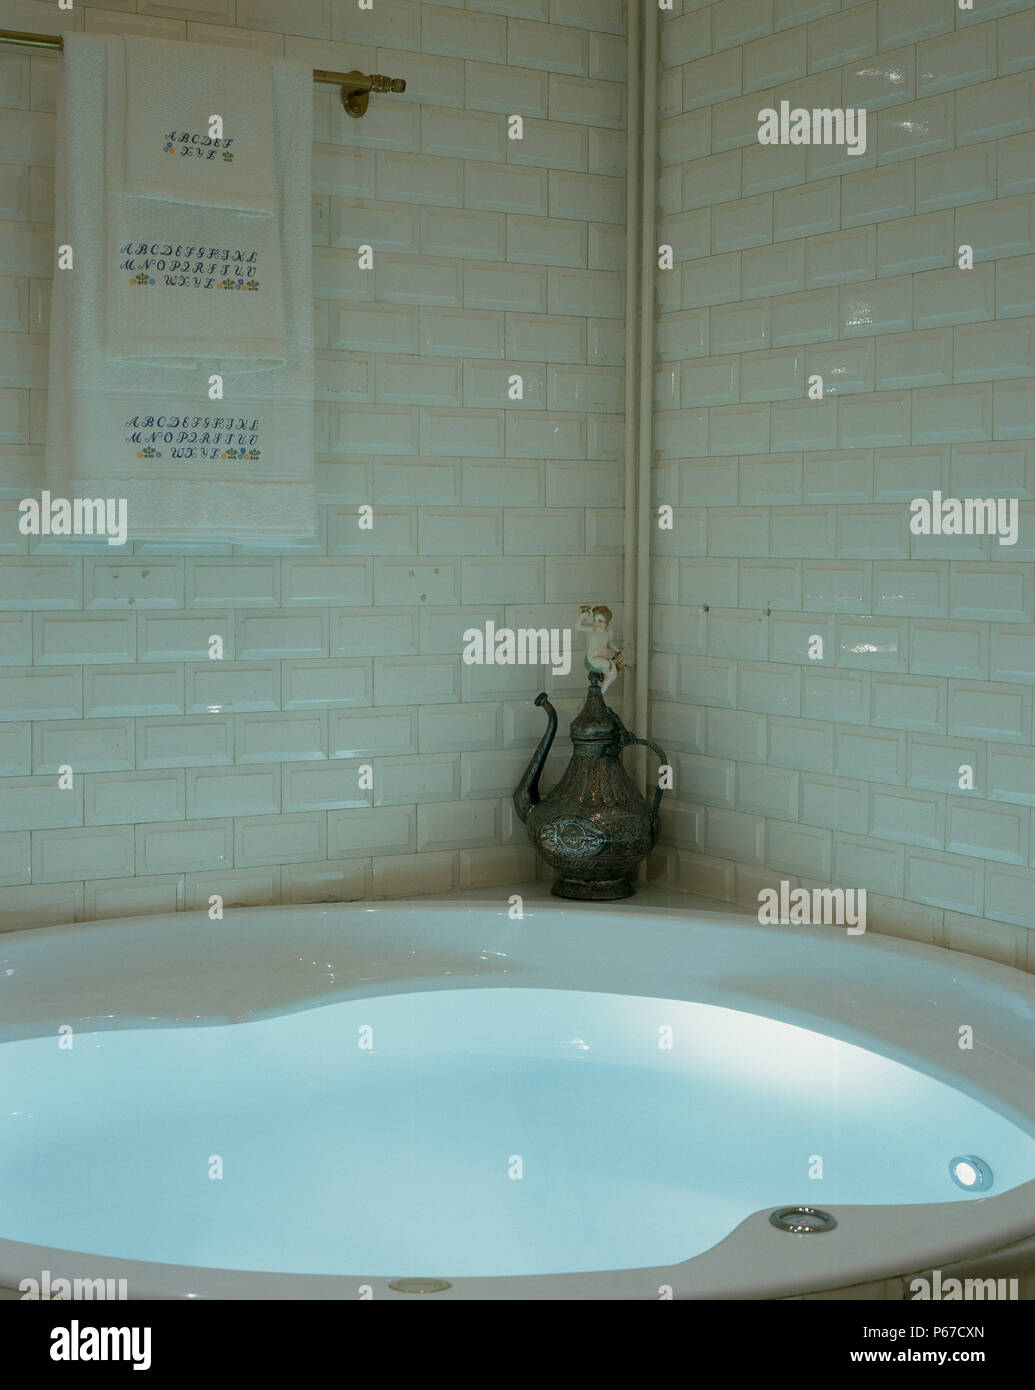 View of an ornament beside a bathtub - Stock Image